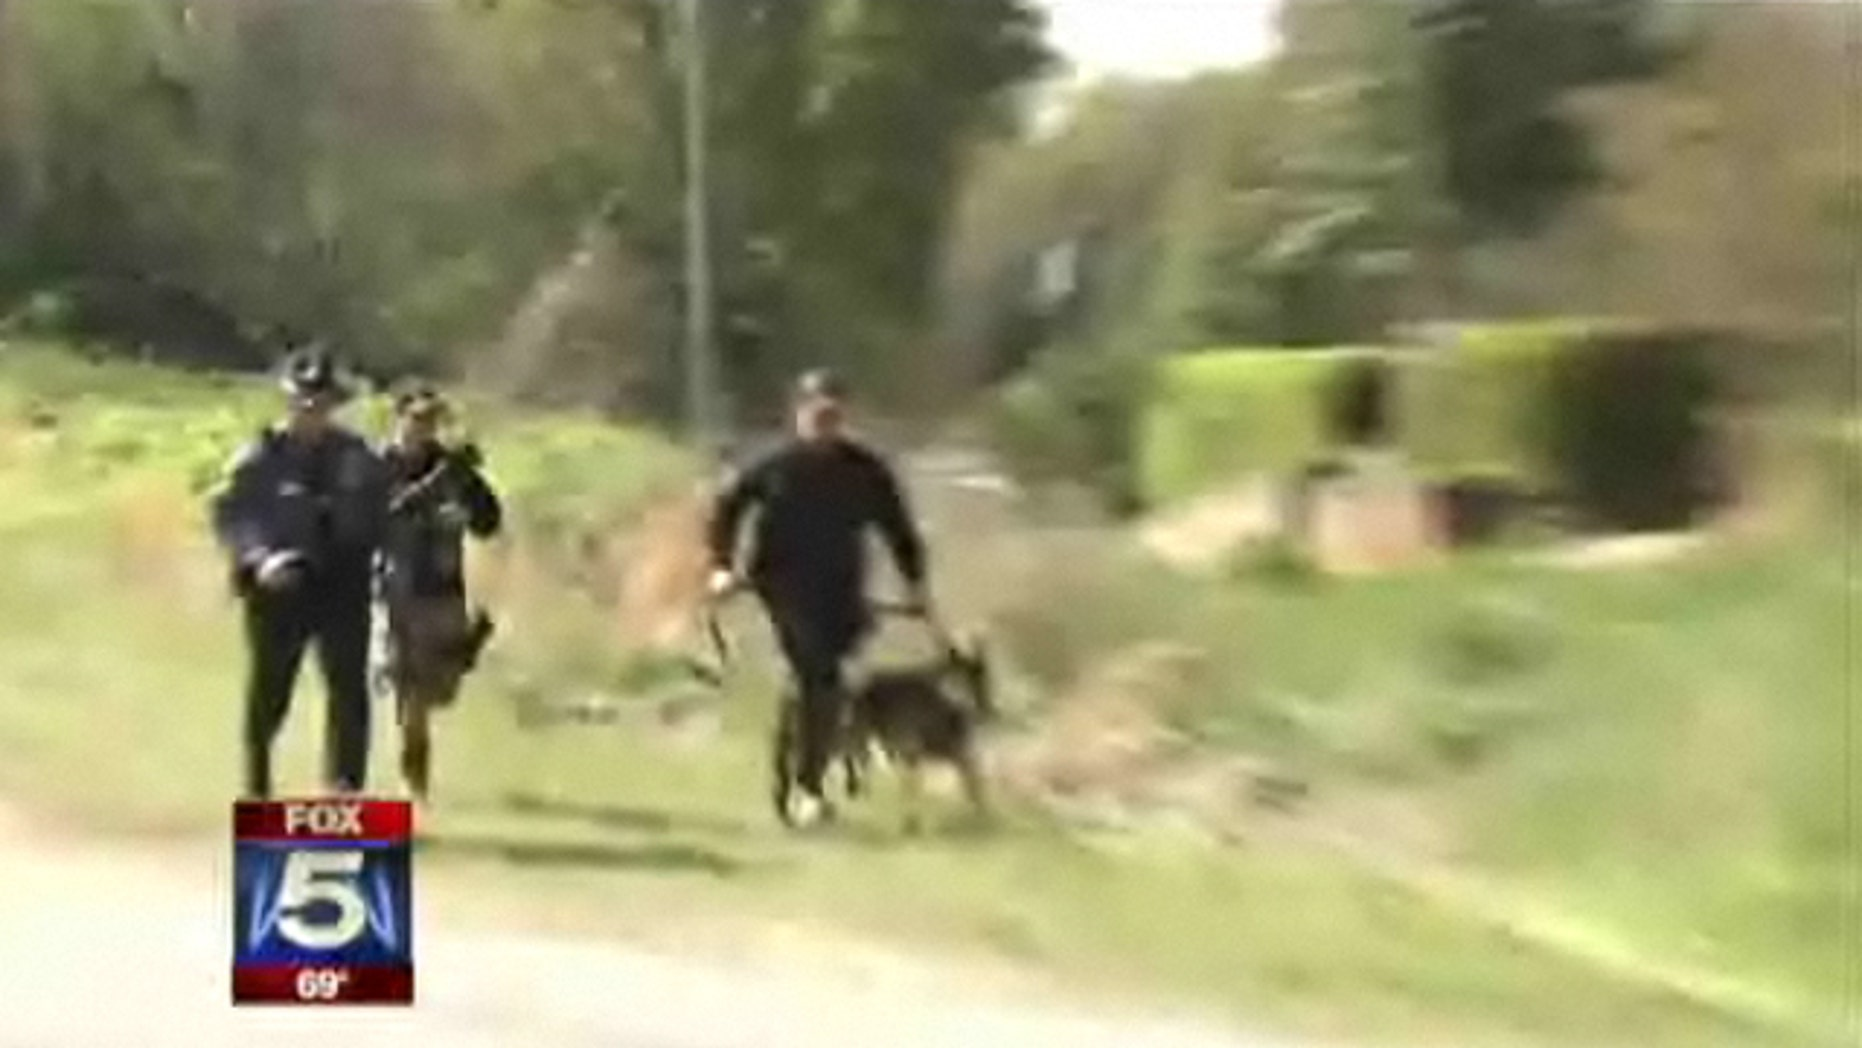 March 25, 2011: Police in Georgia respond to a hostage situation with the suspect in the shooting death of an officer earlier in the week.